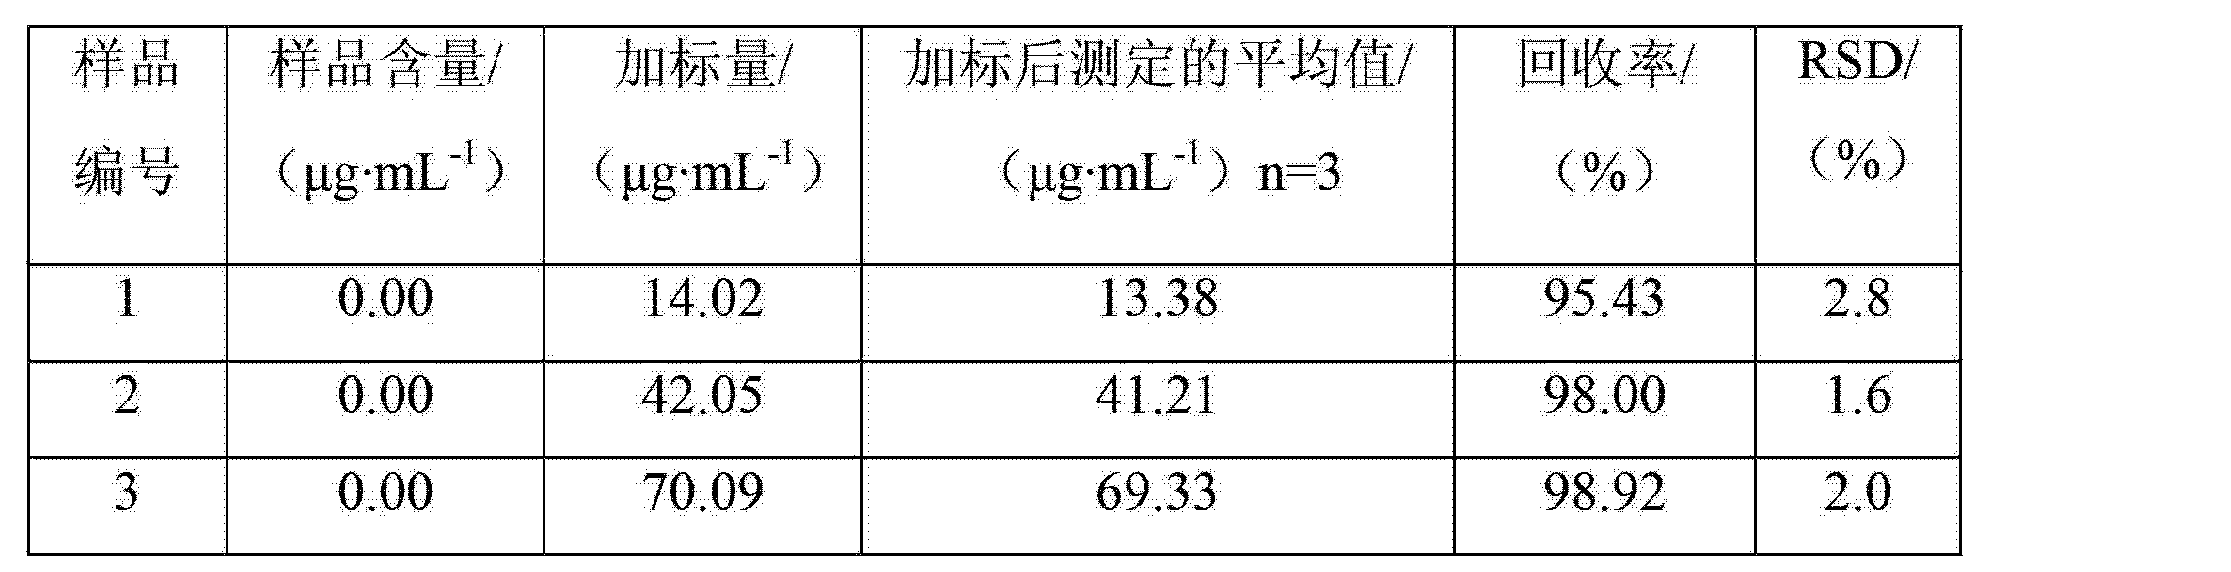 CN102735739B - Electrochemical method for detecting banned